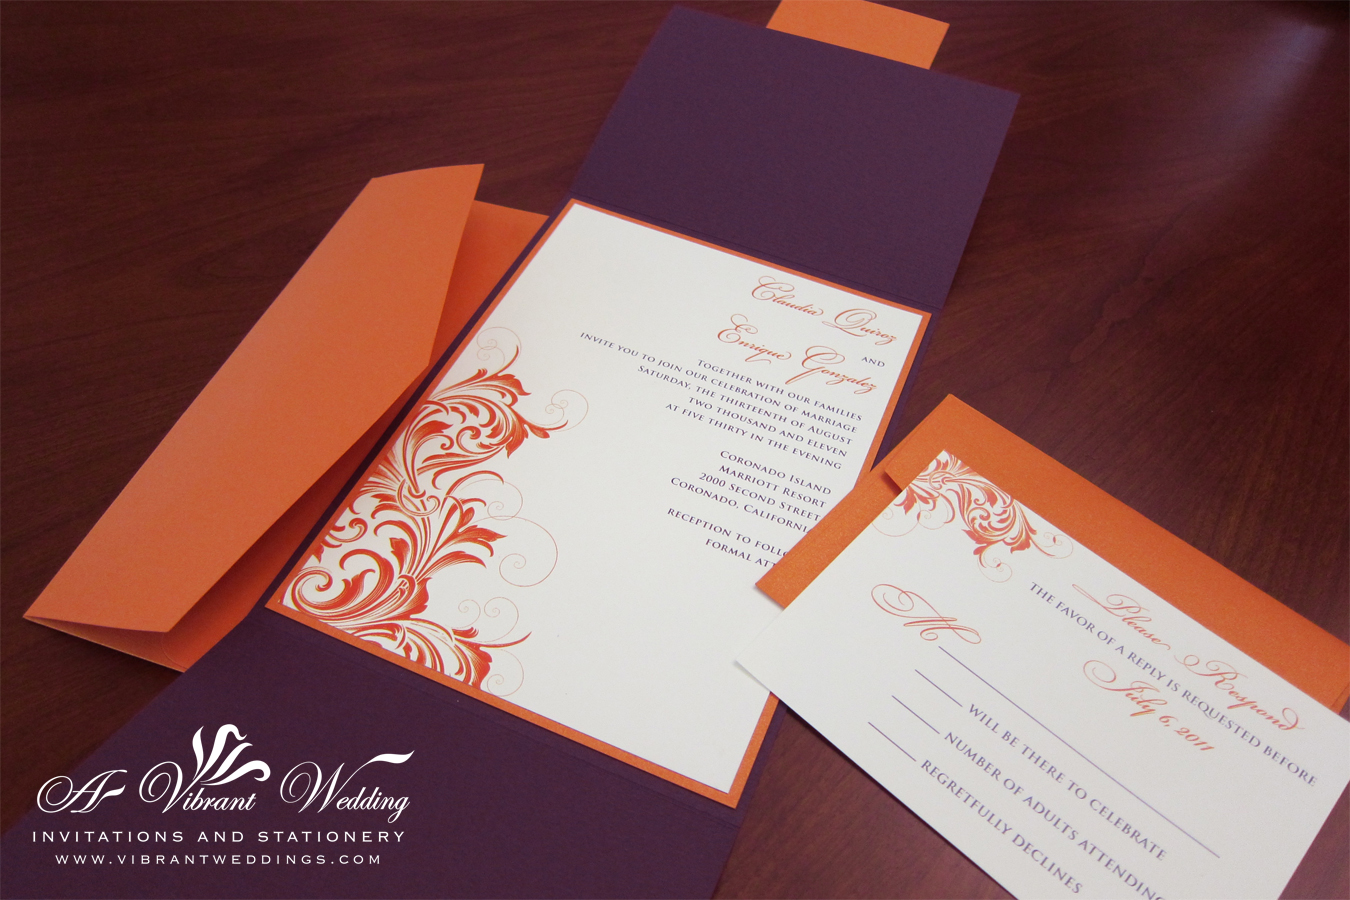 Where To Get Wedding Invitations: Middle Eastern Theme Designs